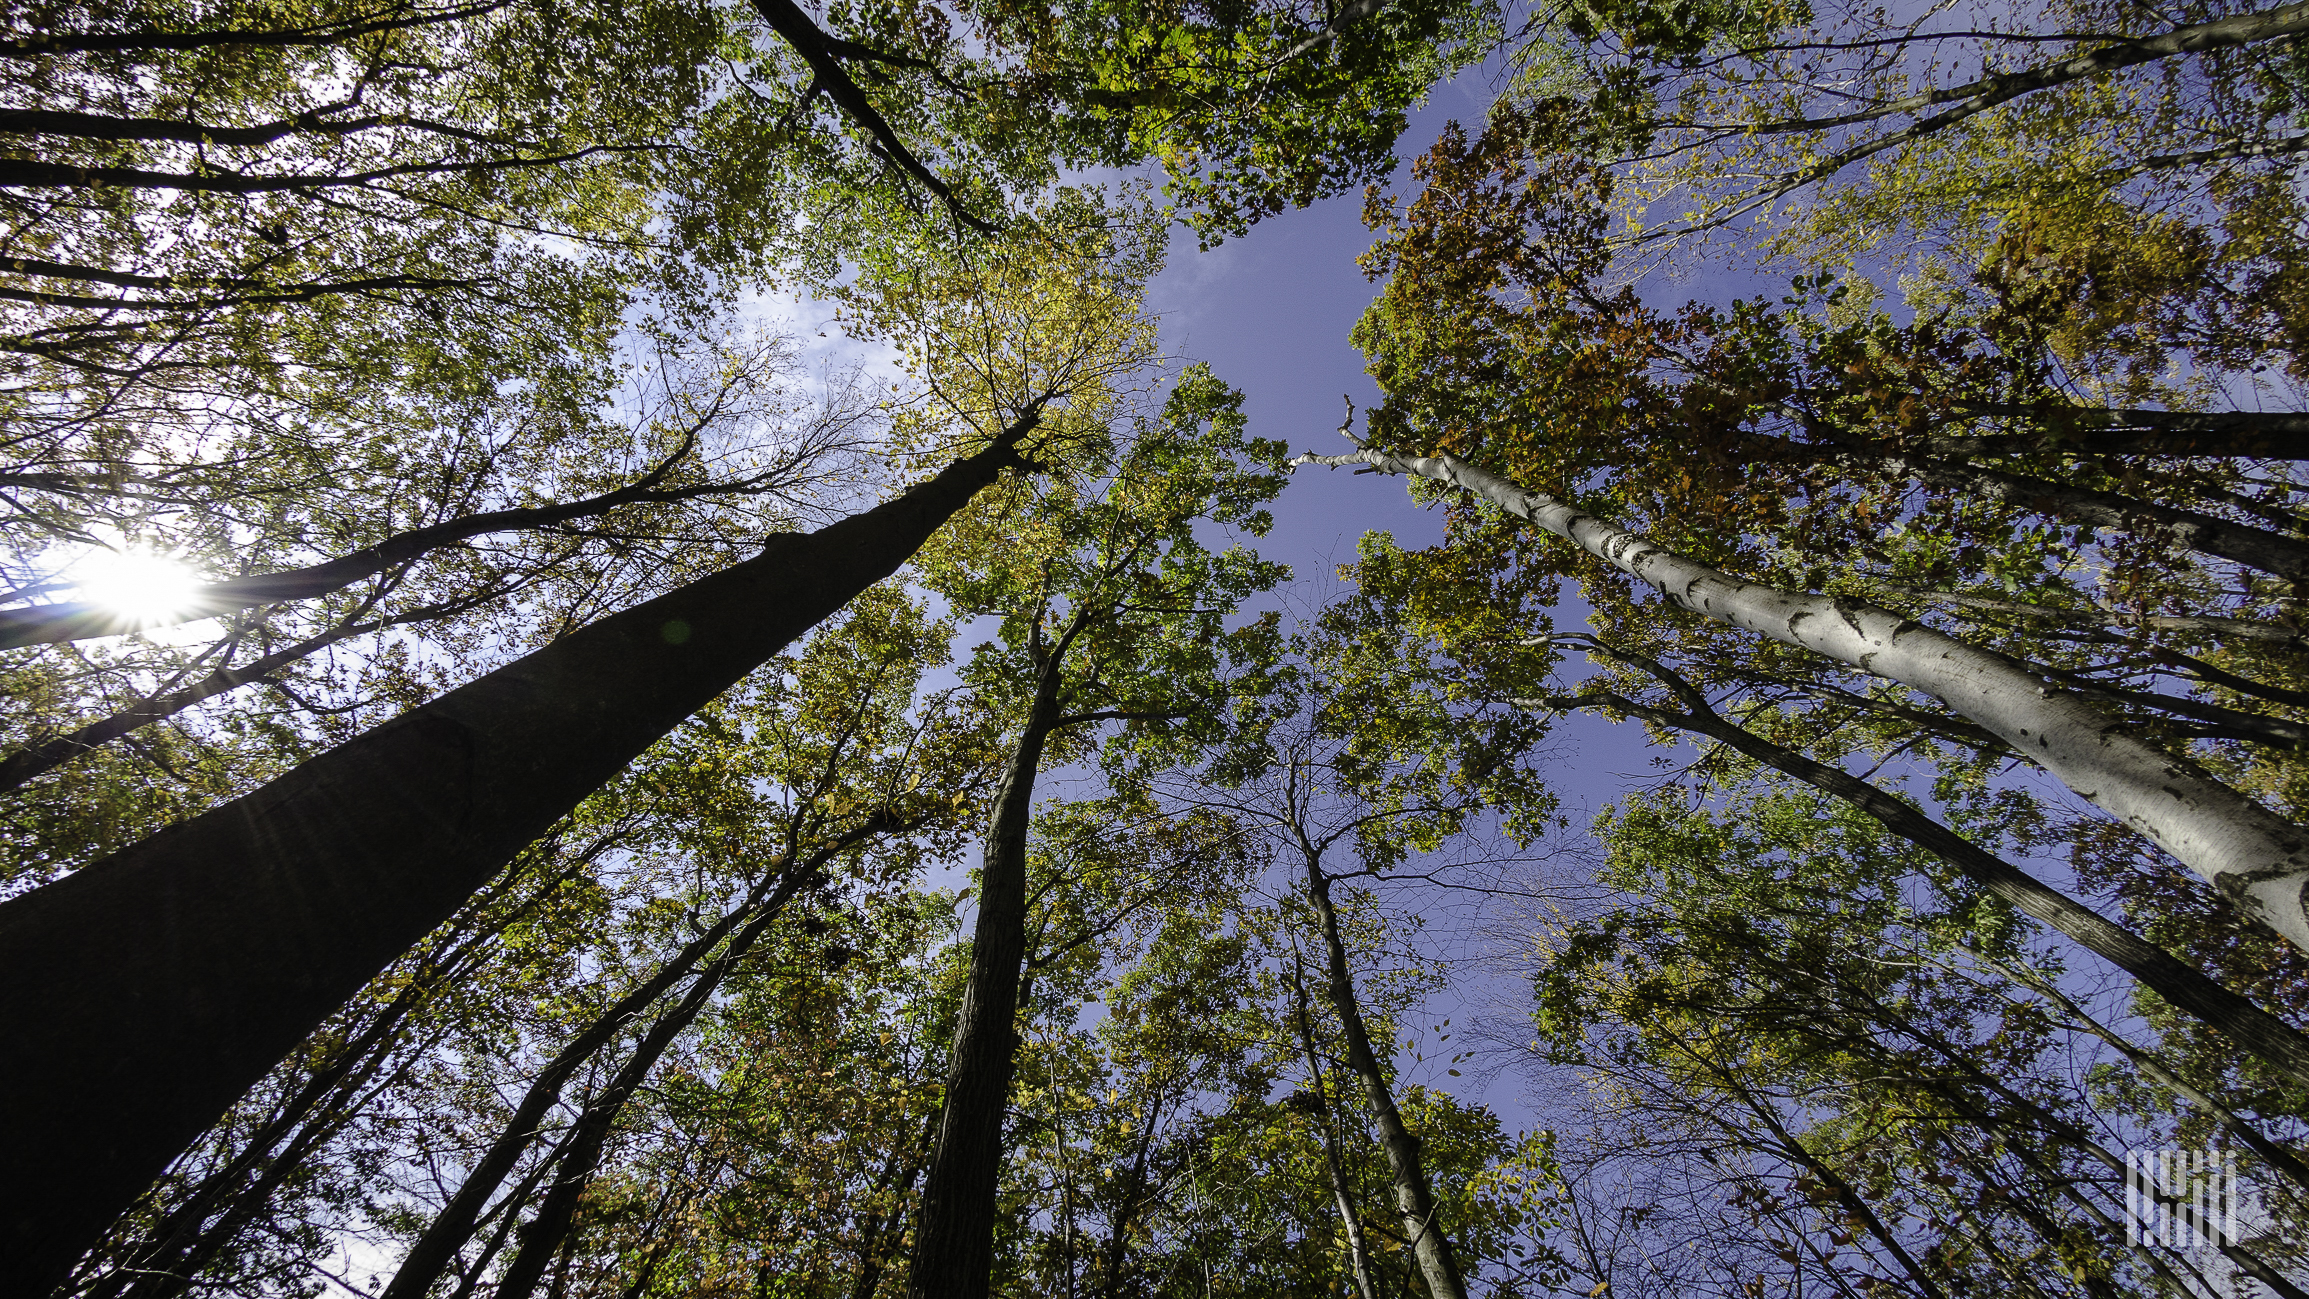 A photograph of a canopy of trees.